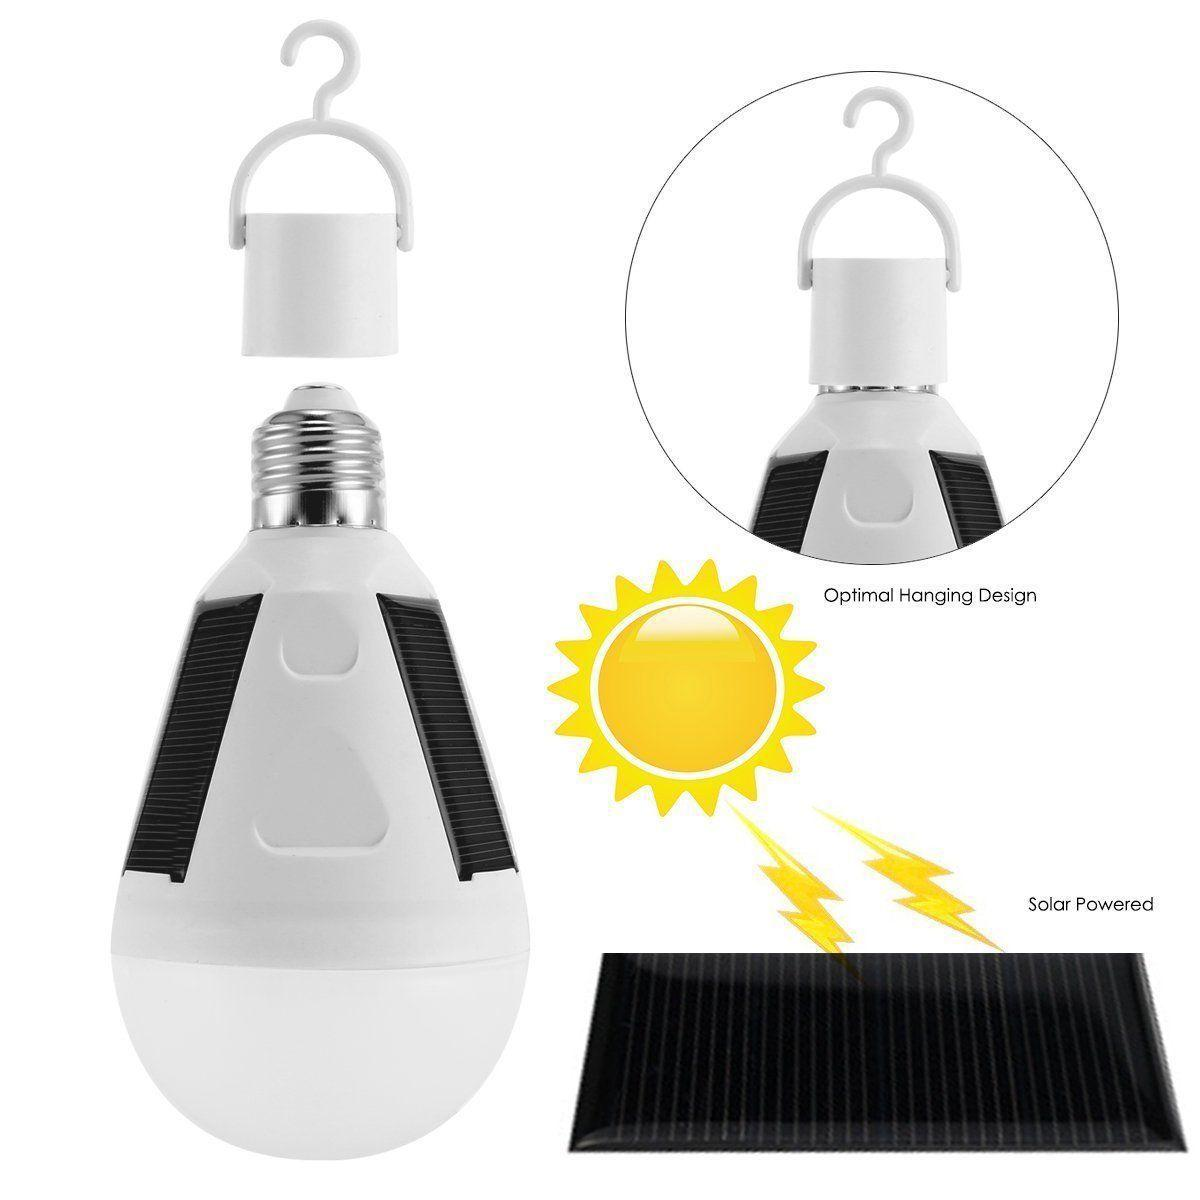 Emergency Led Solar Light Bulb 7W 12W Rechargeable Solar Lamps 85-265V Energy Saving Light LED Intelligent Lamp Solar lighting